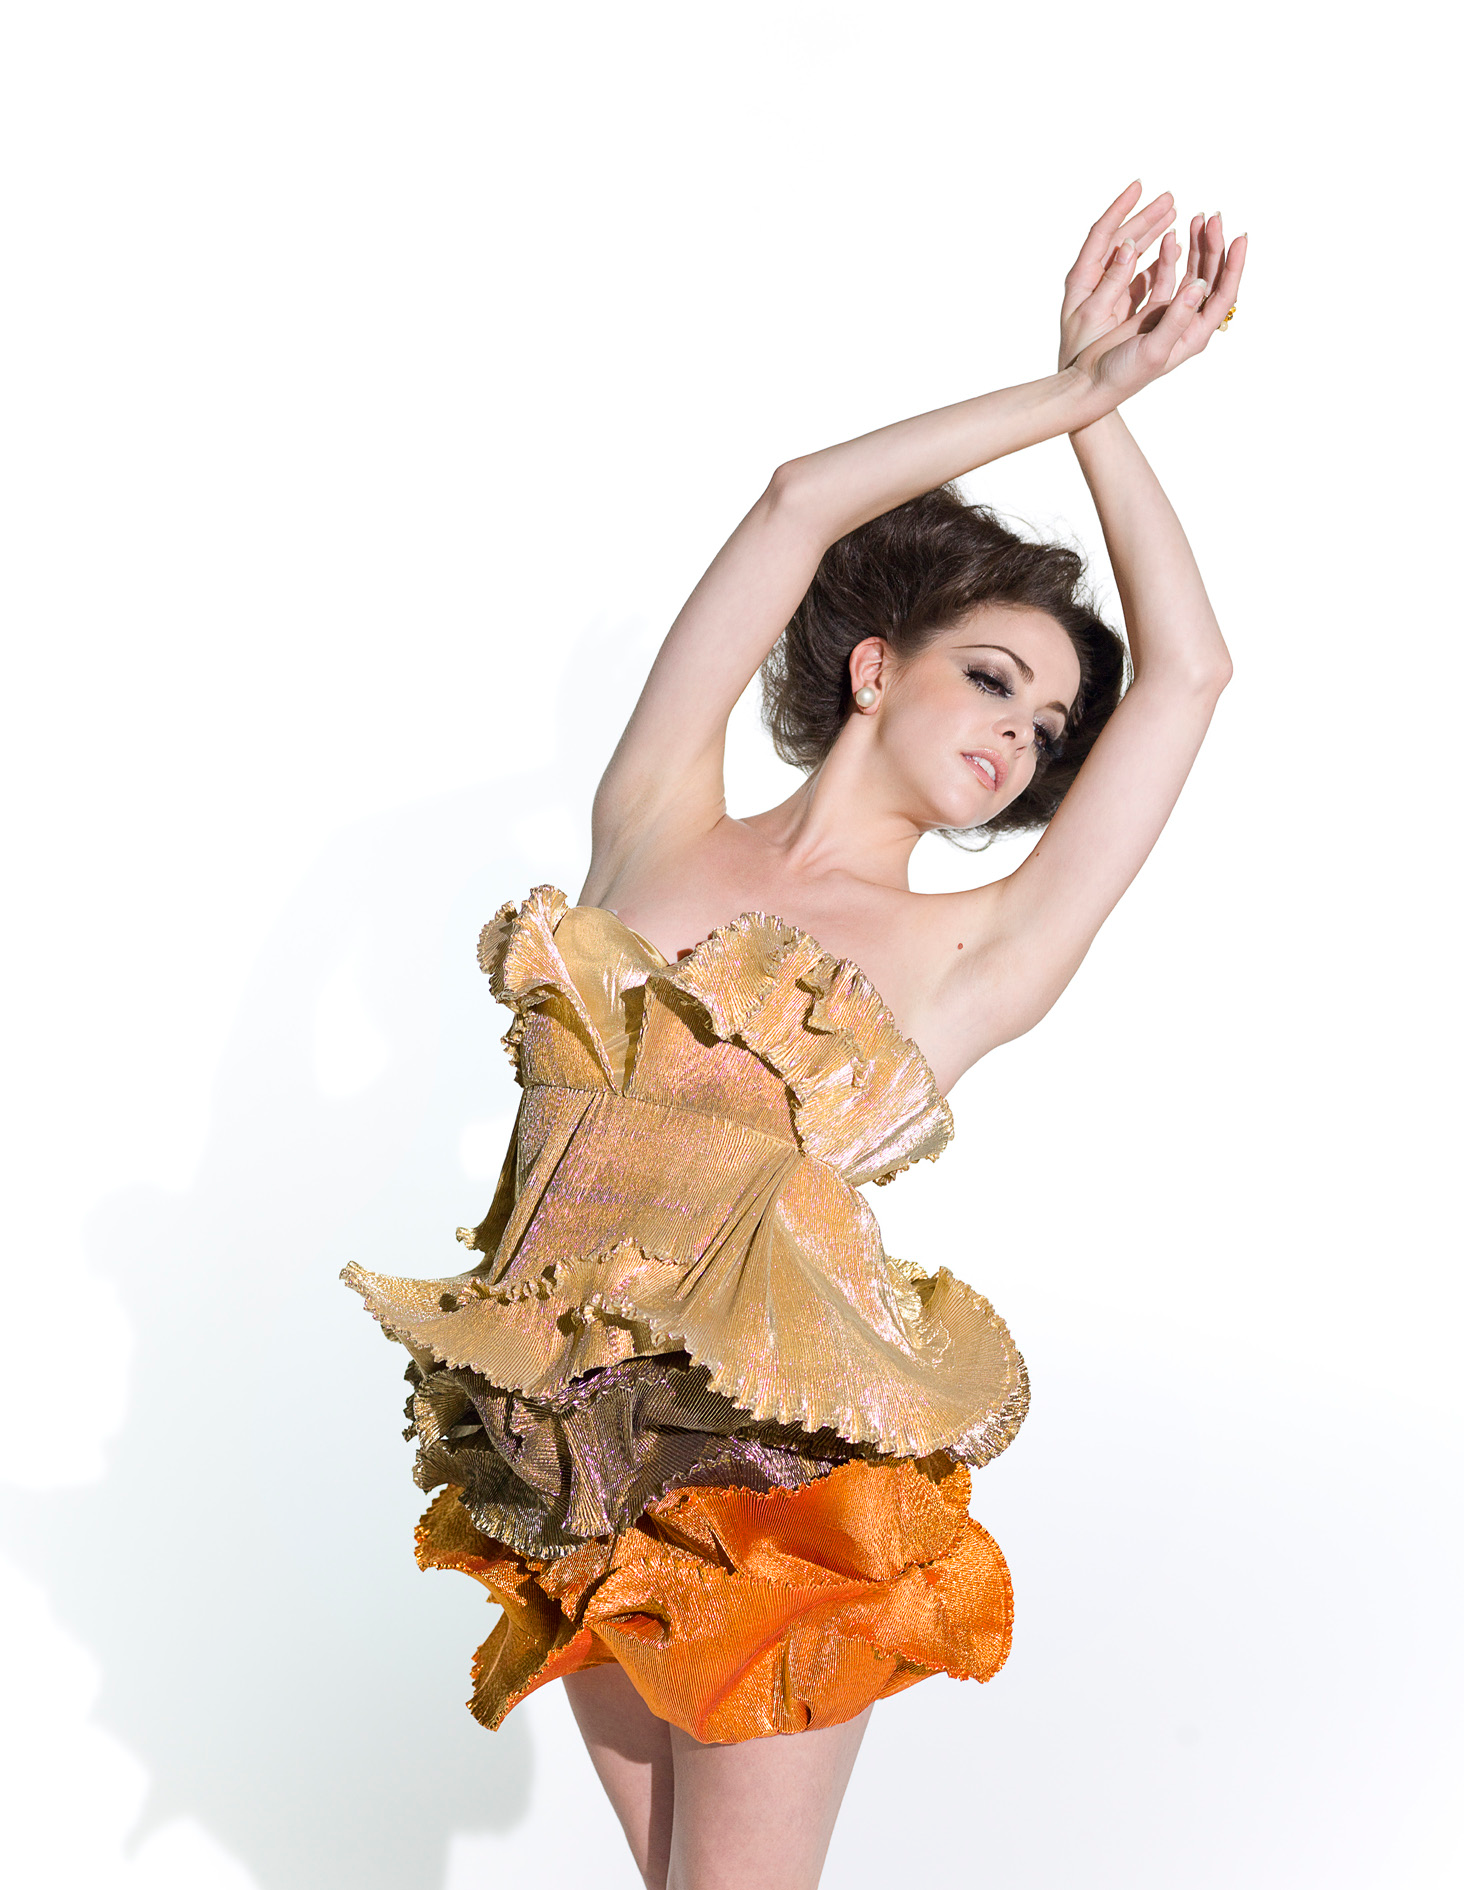 dancer wearing orange dress from English National Ballet